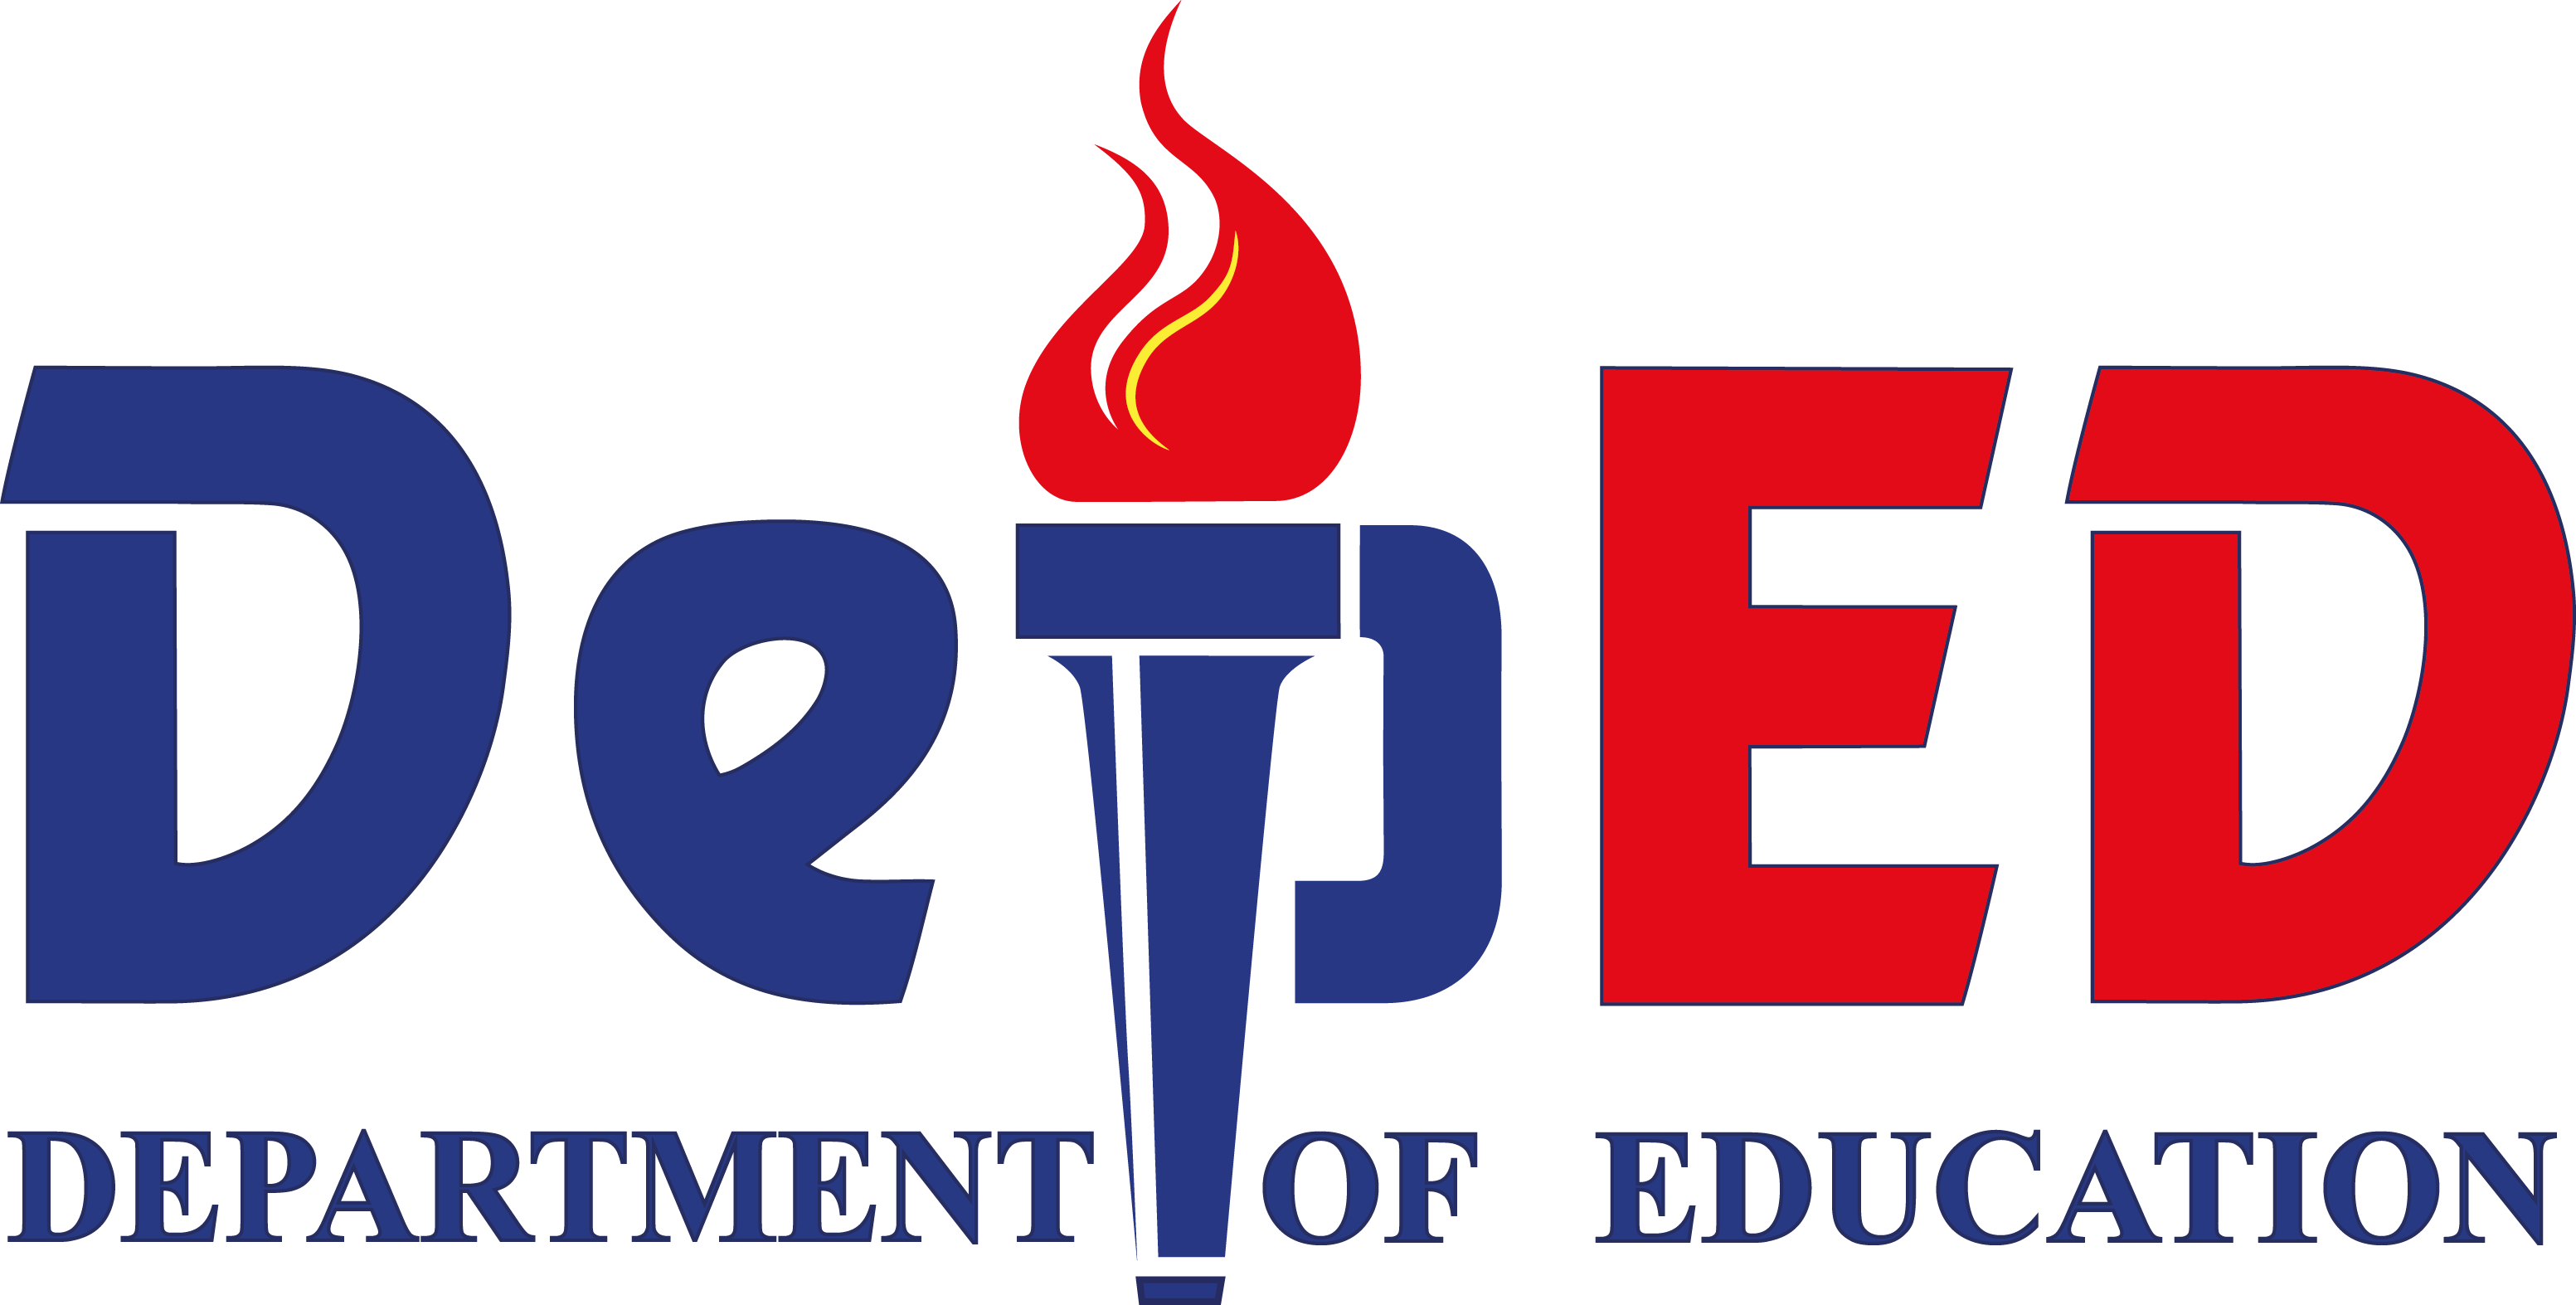 the gallery for gt department of education logo png